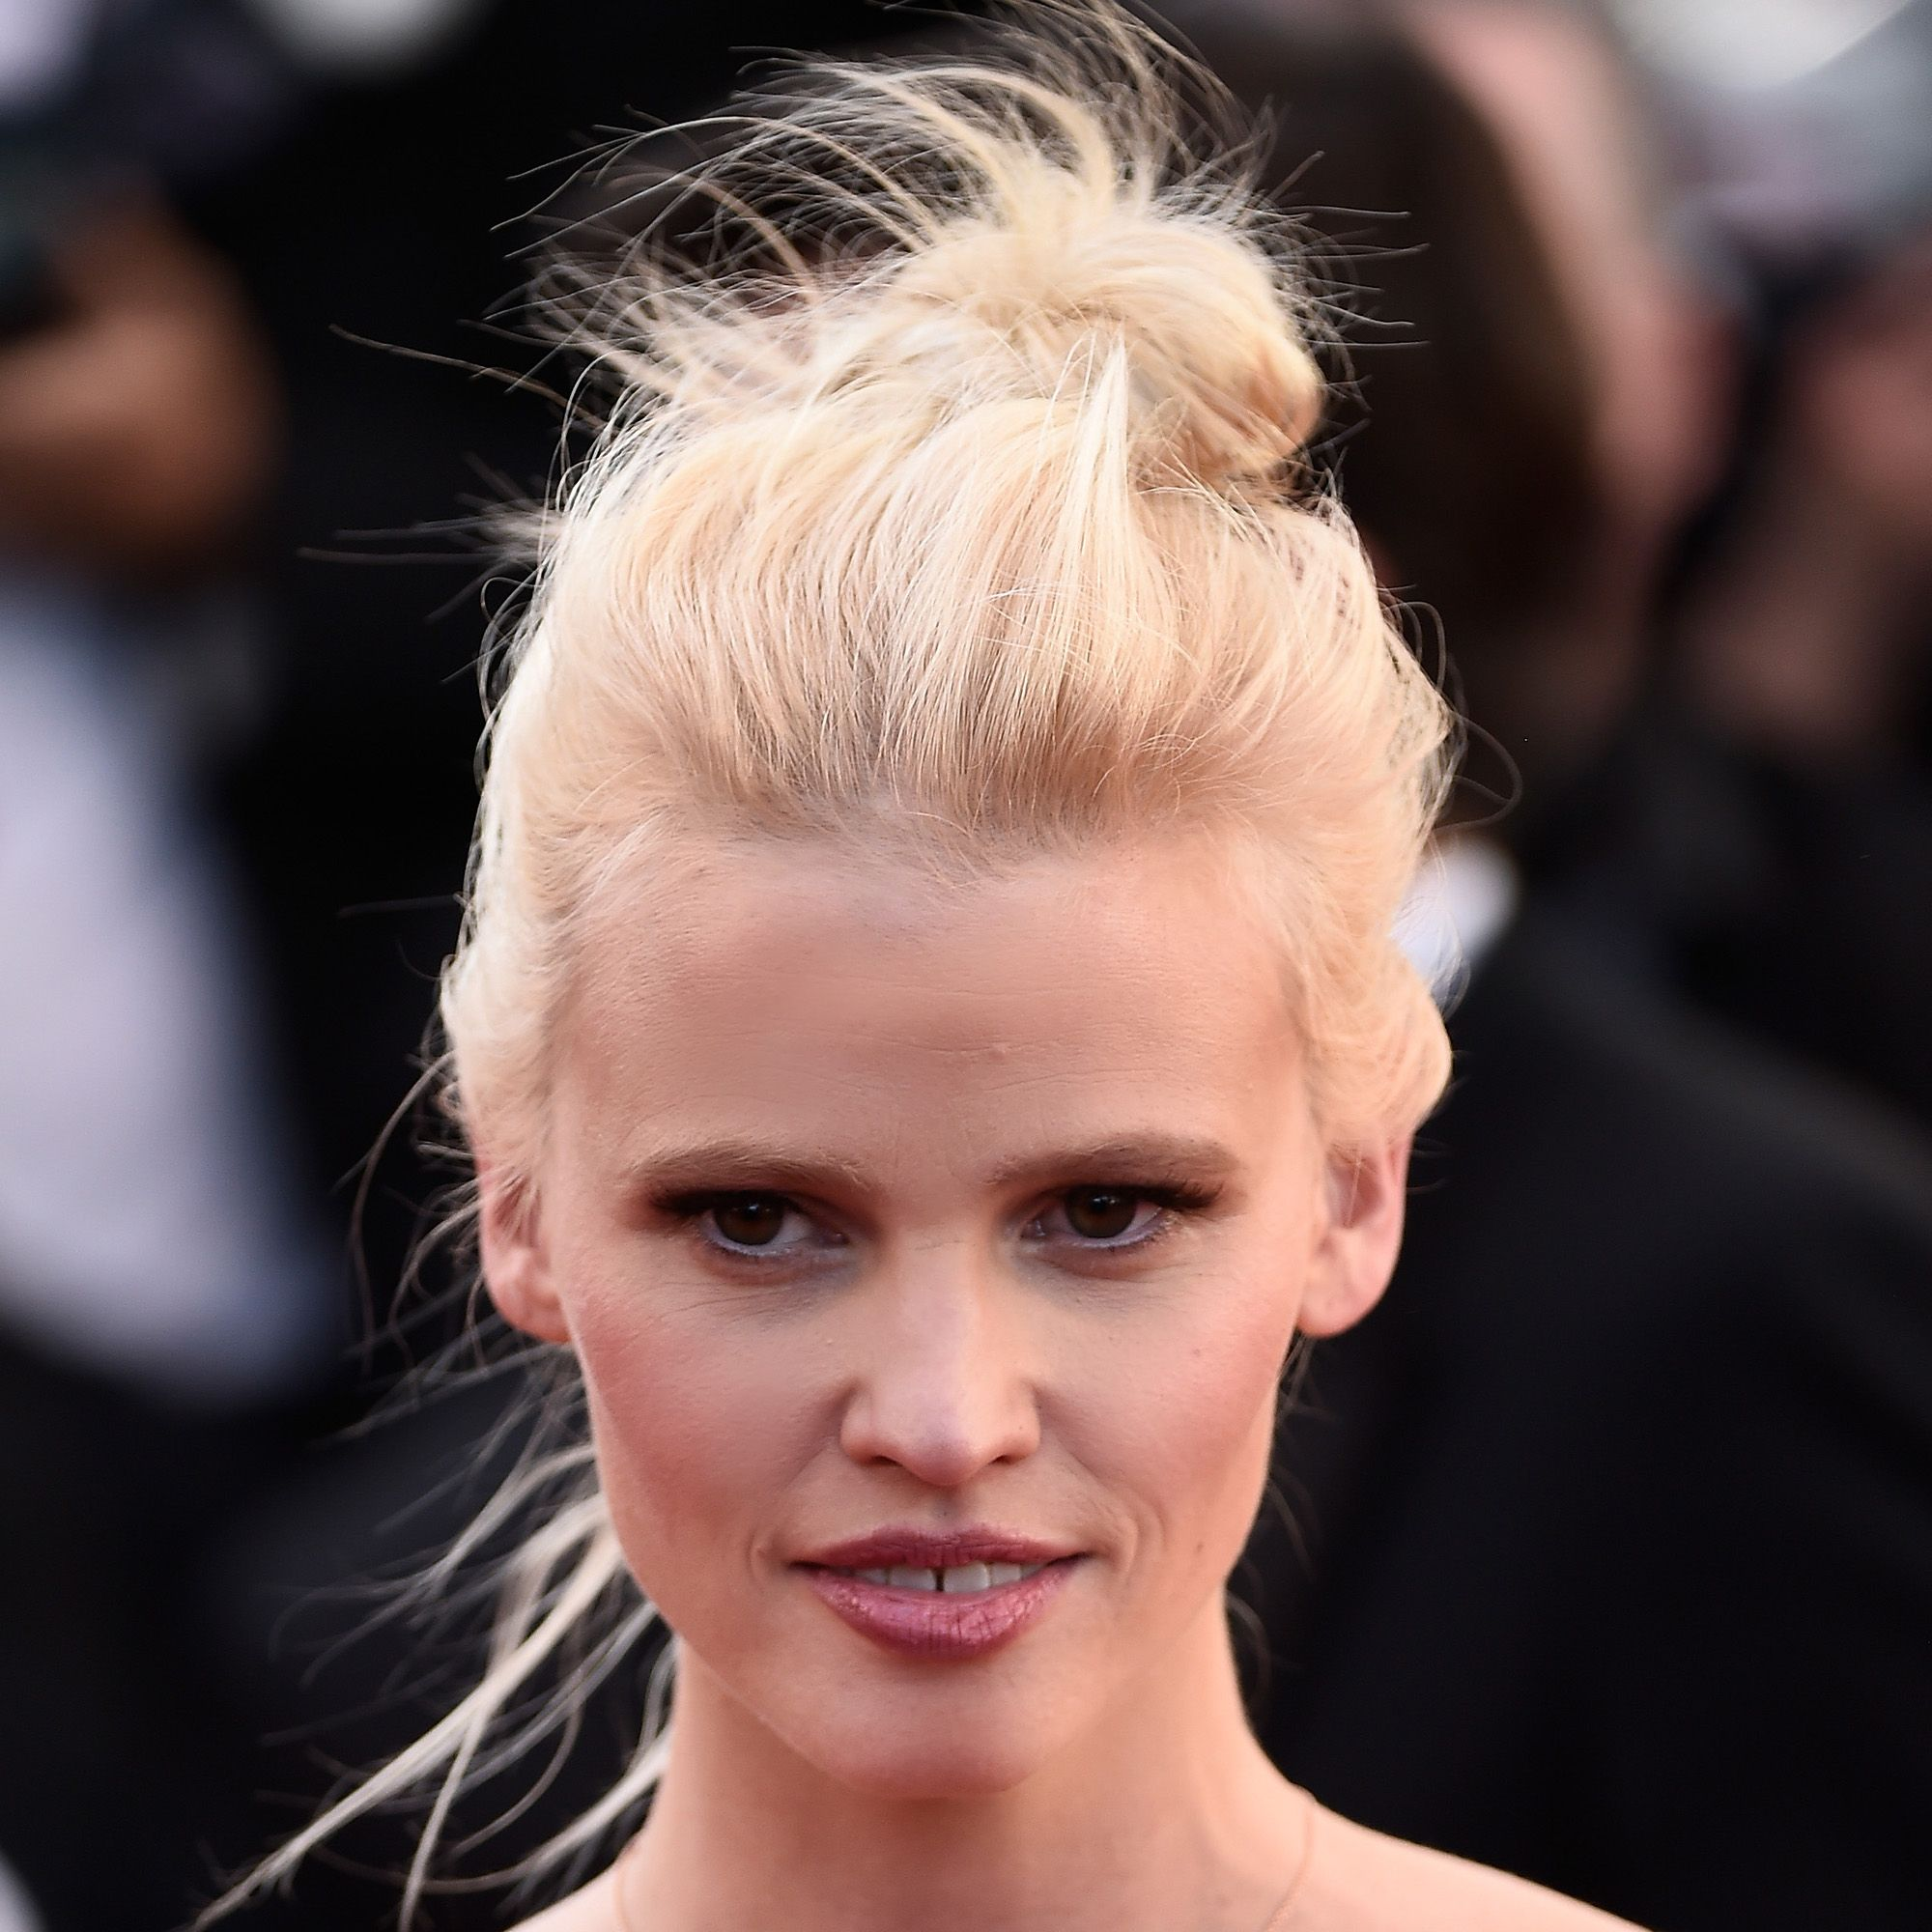 """CANNES, FRANCE - MAY 20:  Lara Stone attends the Premiere of """"Youth"""" during the 68th annual Cannes Film Festival on May 20, 2015 in Cannes, France.  (Photo by Ian Gavan/Getty Images)"""